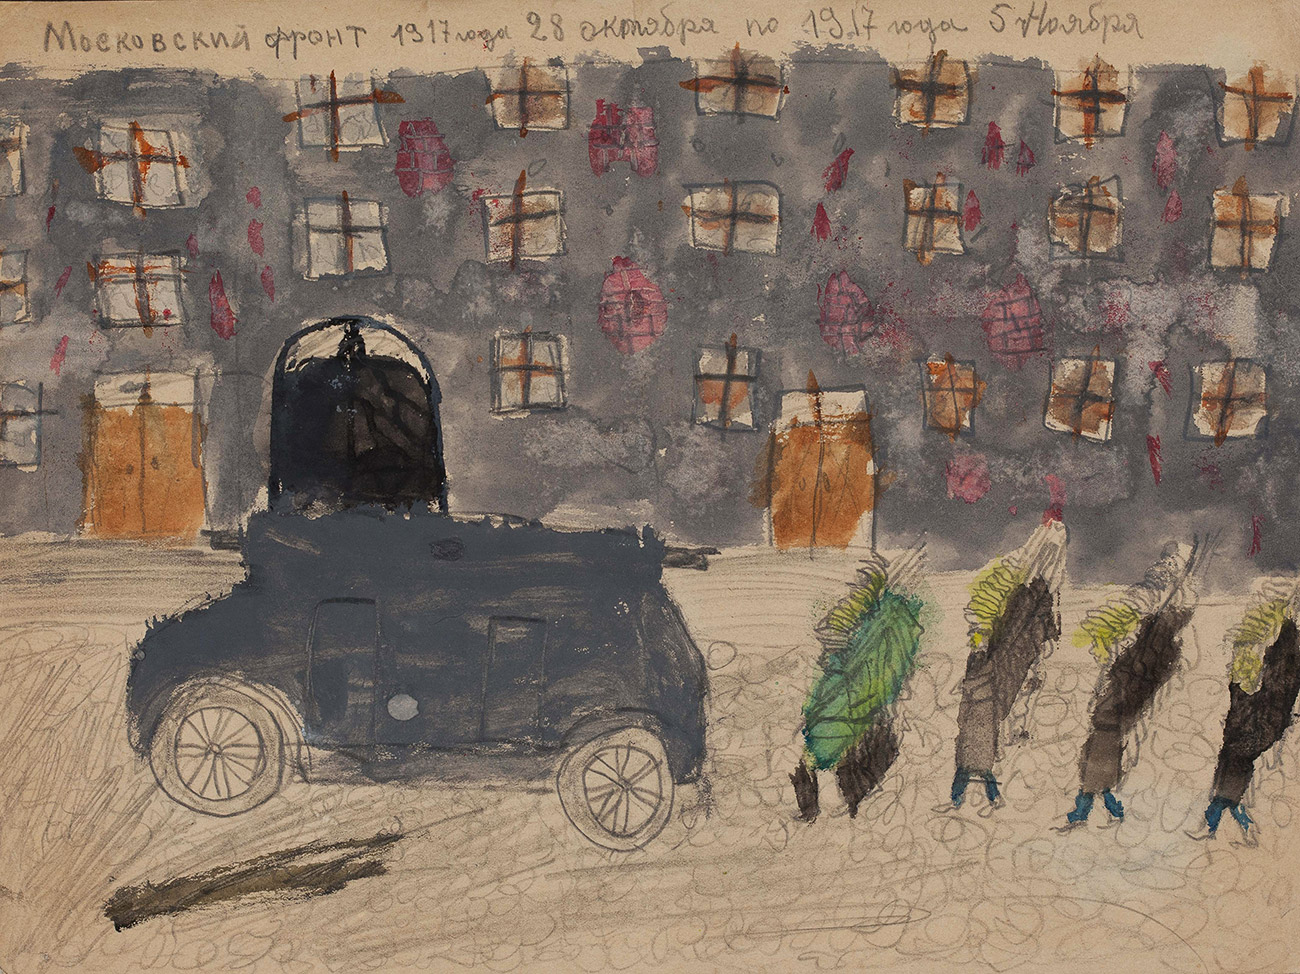 """Battle for Teatralny Square"", ""Siege of a house"" and ""Shelling of the Kremlin"" are just some of the titles from a series of drawings by children who witnessed of the revolutionary and post-revolutionary events of February-November 1917 in Moscow. //  ""The Moscow Front: Oct. 28-Nov. 5, 1917"", November 1917"